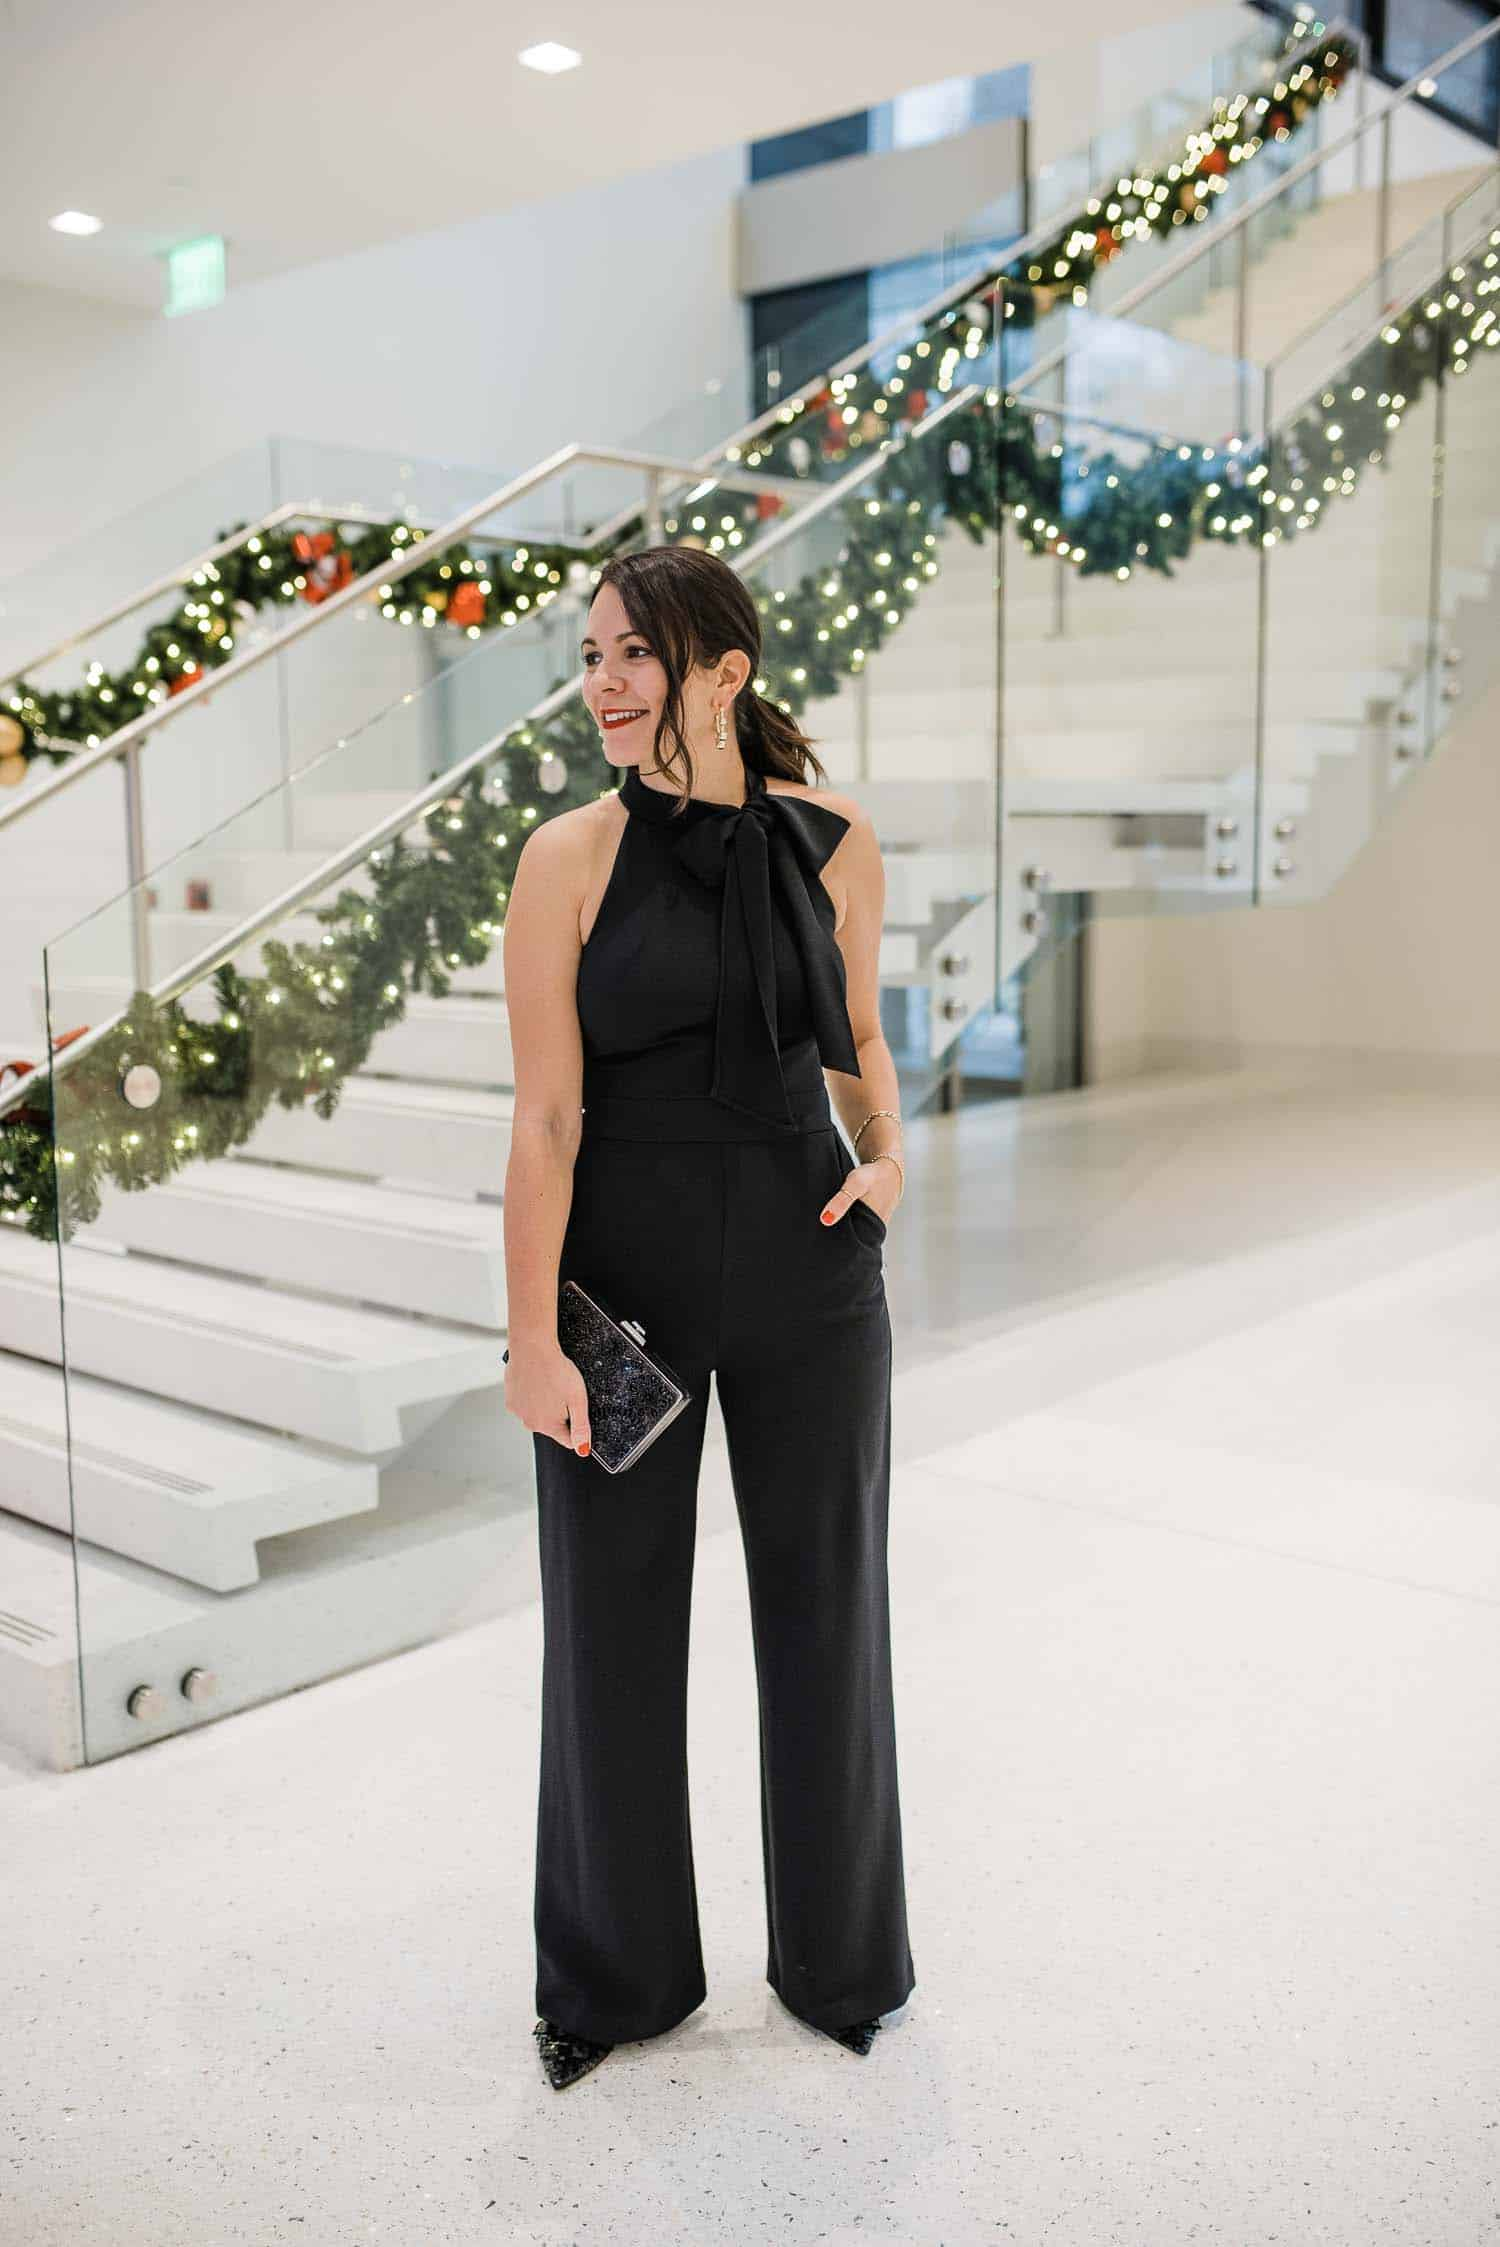 e8864a8fbdfe Vince Camuto Jumpsuit - A Stunning Jumpsuit To Ring In The New Year